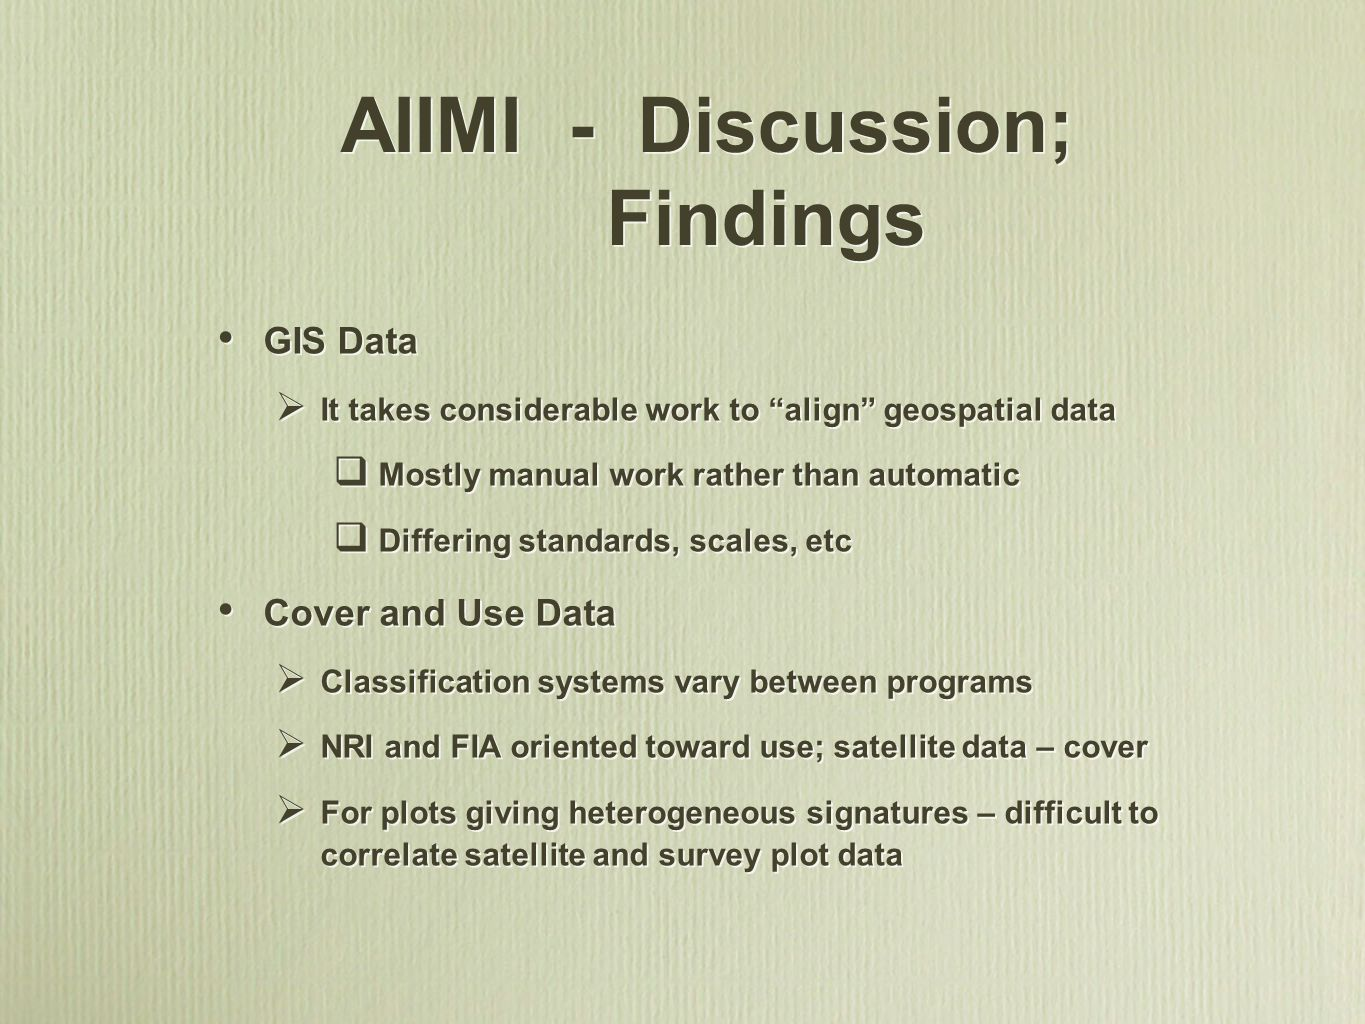 AIIMI - Discussion; Findings